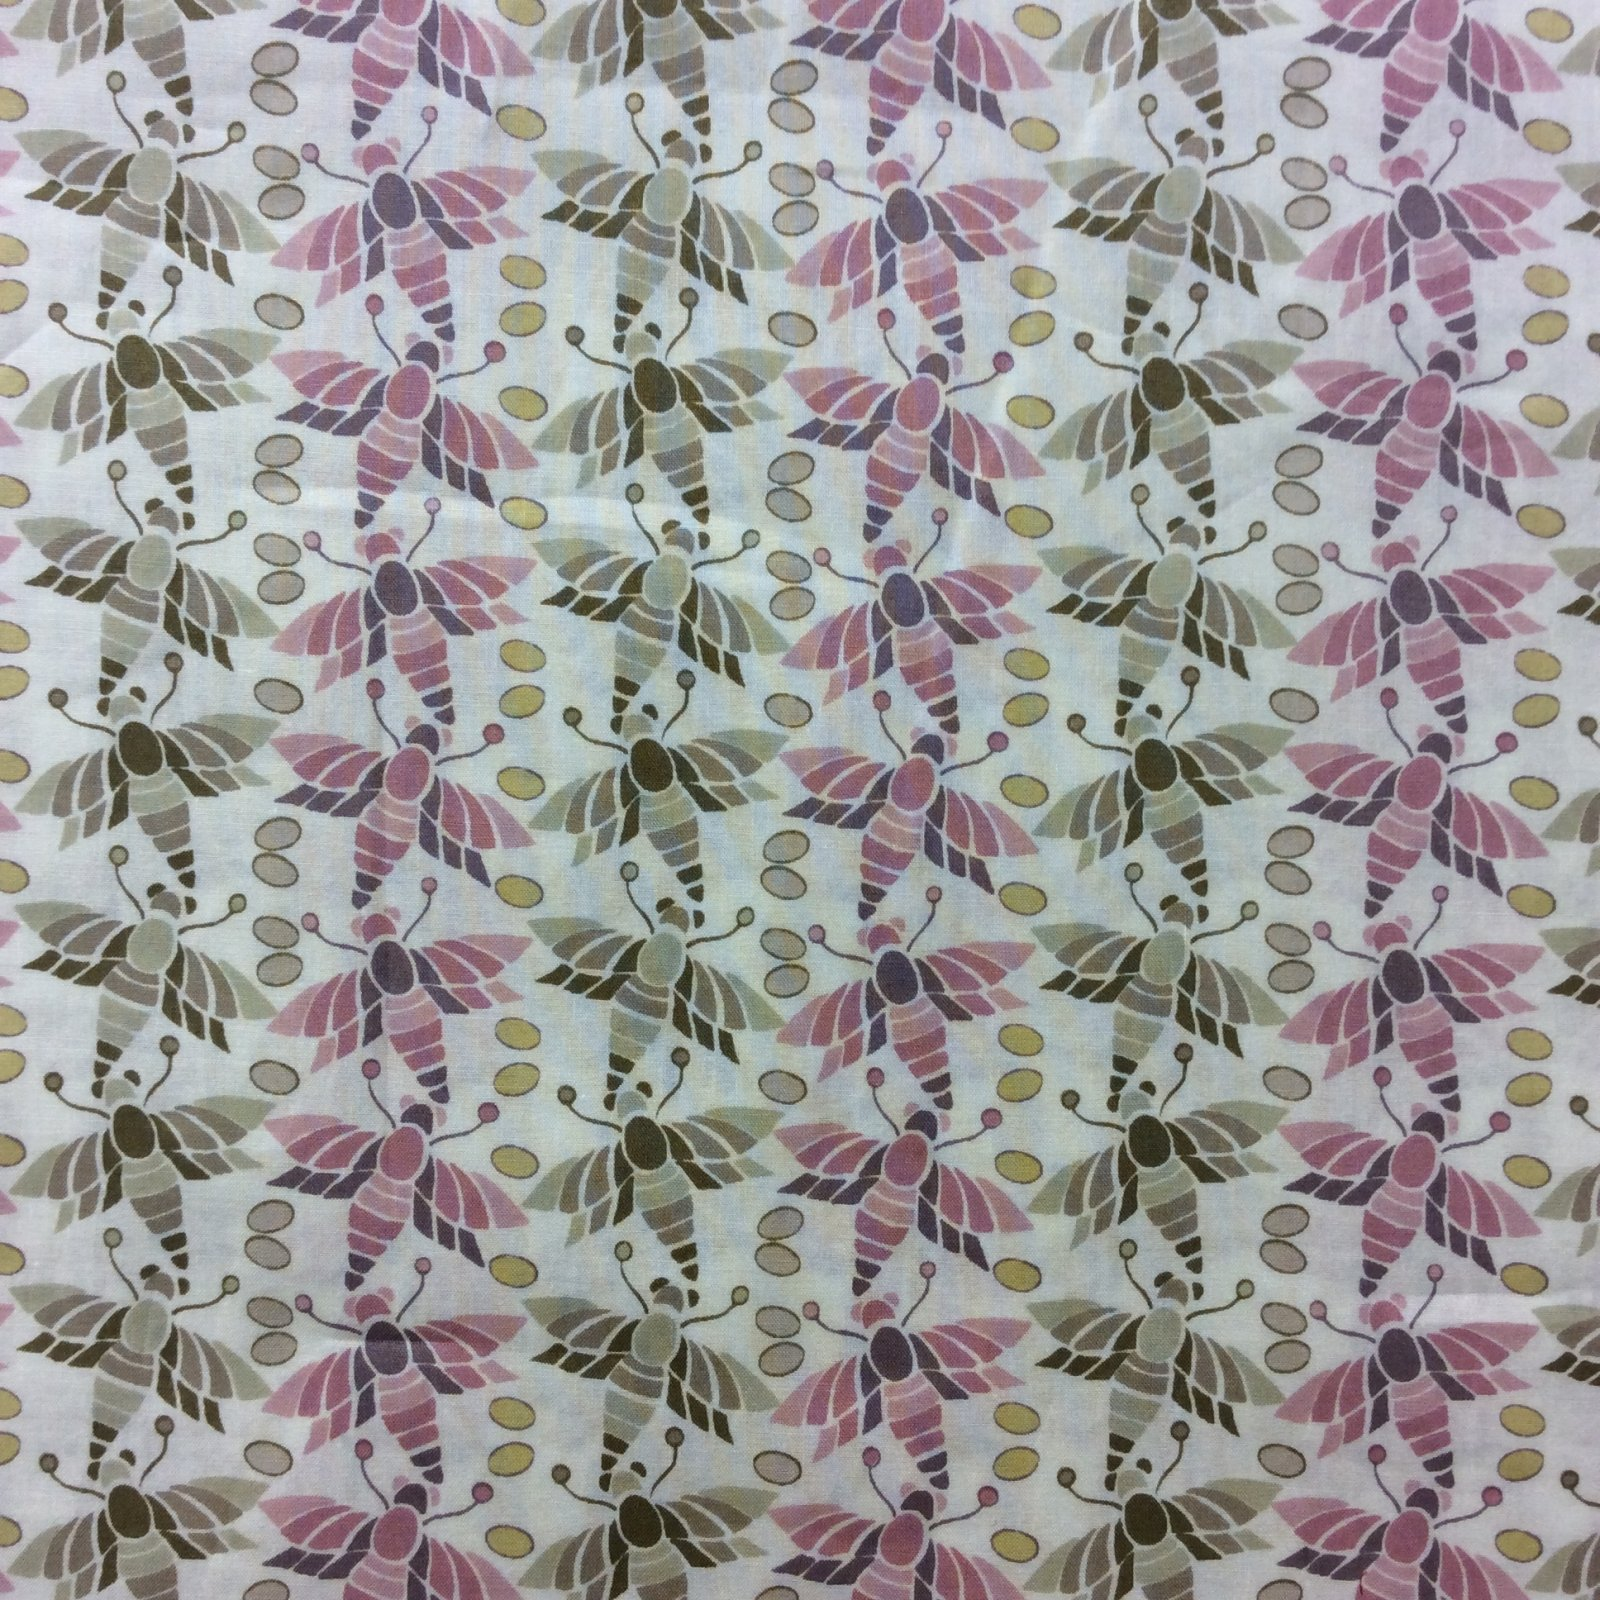 Liberty of London Bugs Moths Cotton Apparel Lawn Fabric Fashion Fabric LL06